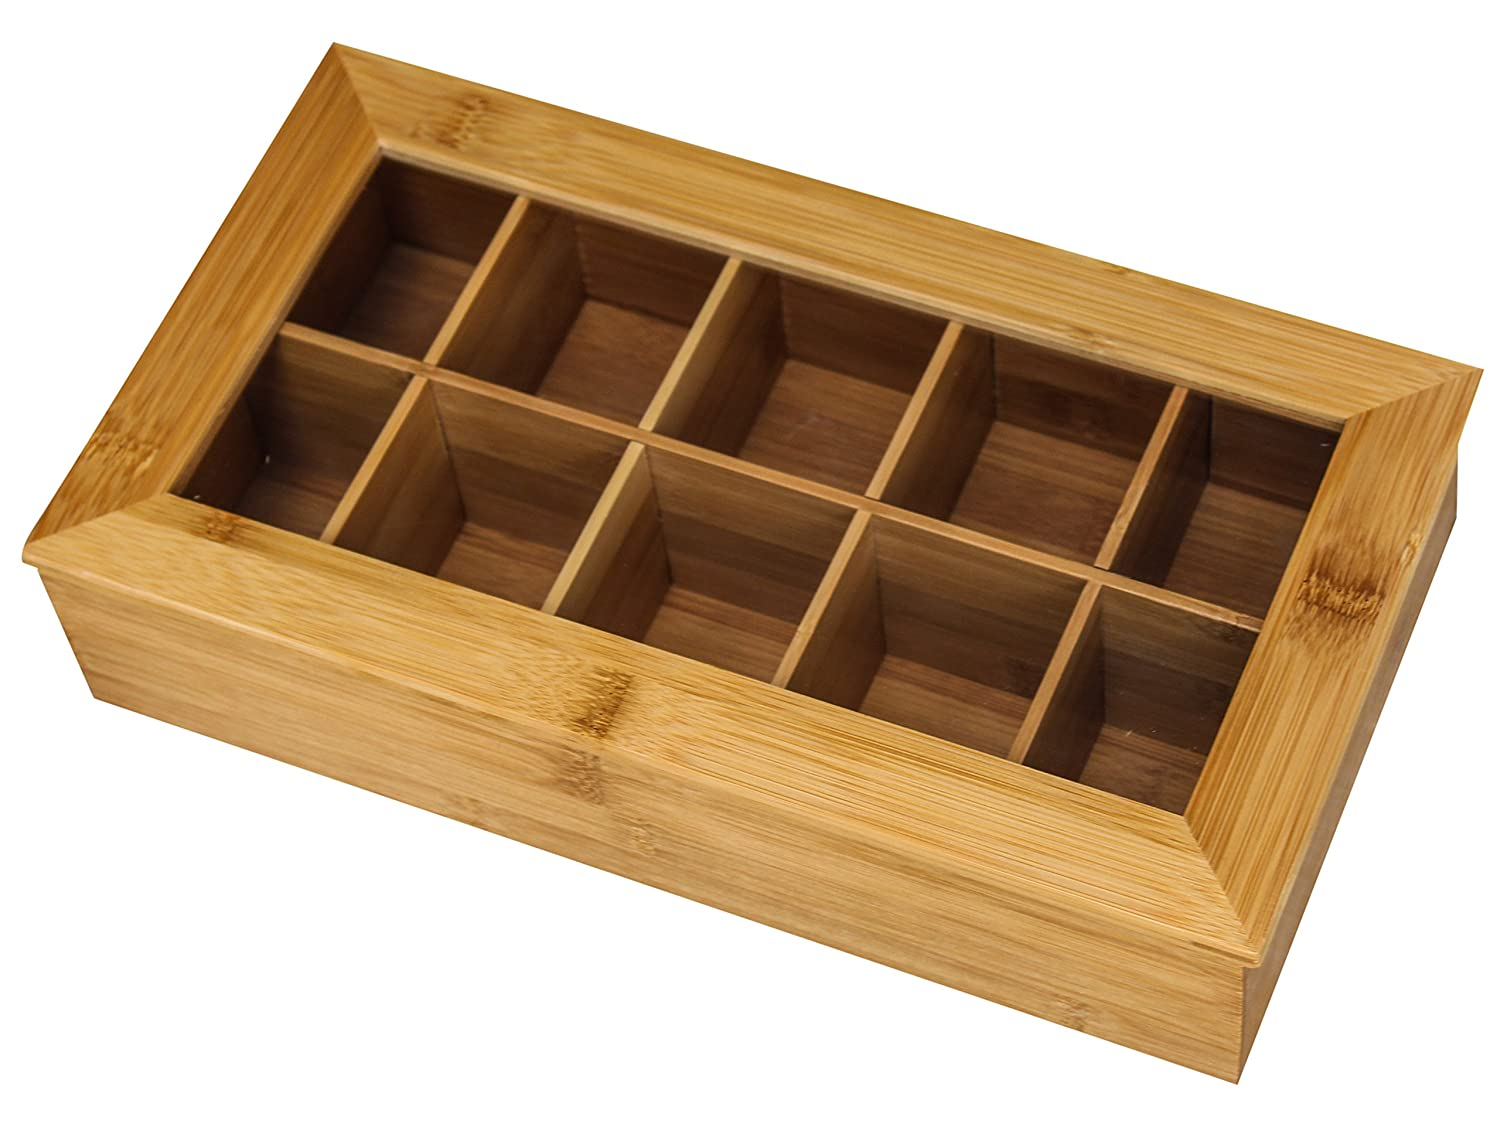 Bamboo Tea Storage Box - Tea Bag Organizer Or Kitchen Condiment Holder Perfect for Tea Lovers (14.5